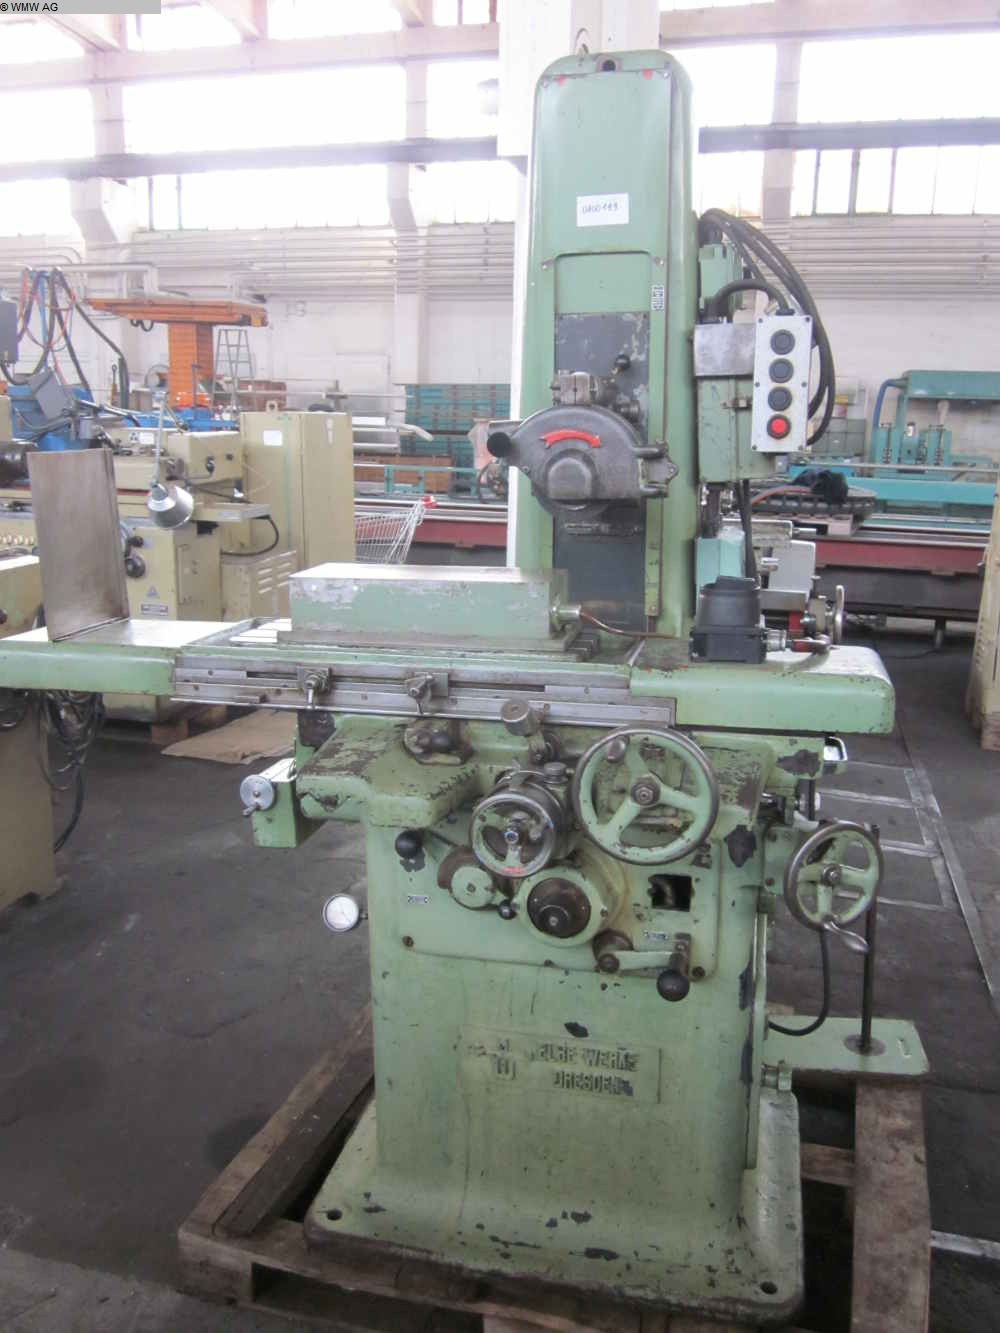 Surface Grinding Machine Elbe Werke Nicht Bekannt Unknown